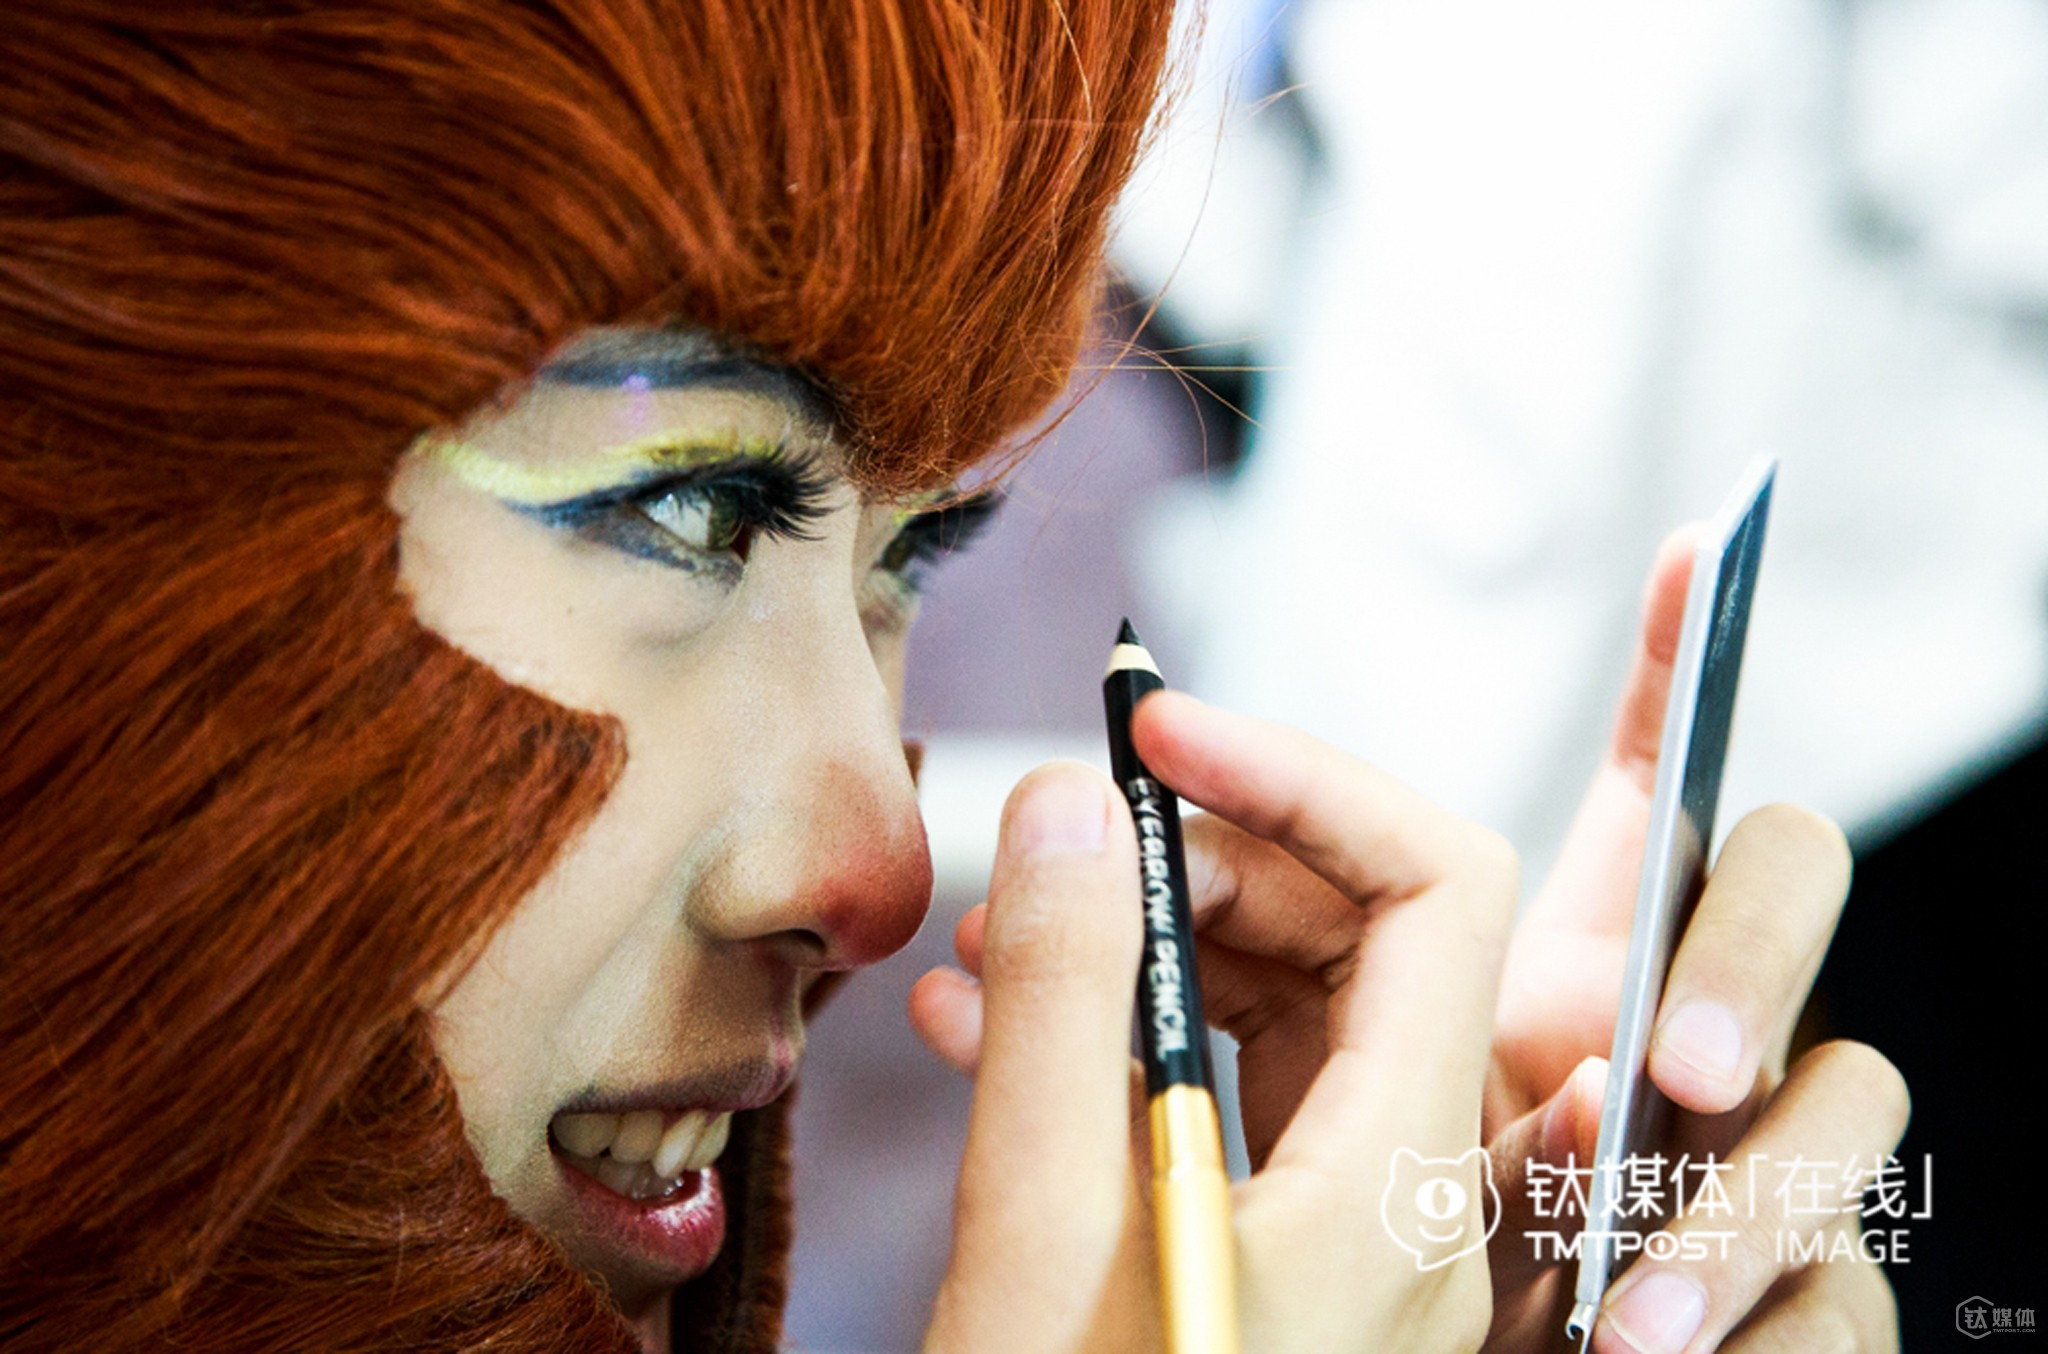 After going to college in Beijing, Lusan became a professional coser. In the above picture, she was the dressing up like the character Great Monkey King. When her roommates were not in the dorm and she received a new set of clothes, she would dress up and practice. Generally, it took her an hour and a half to dress up.